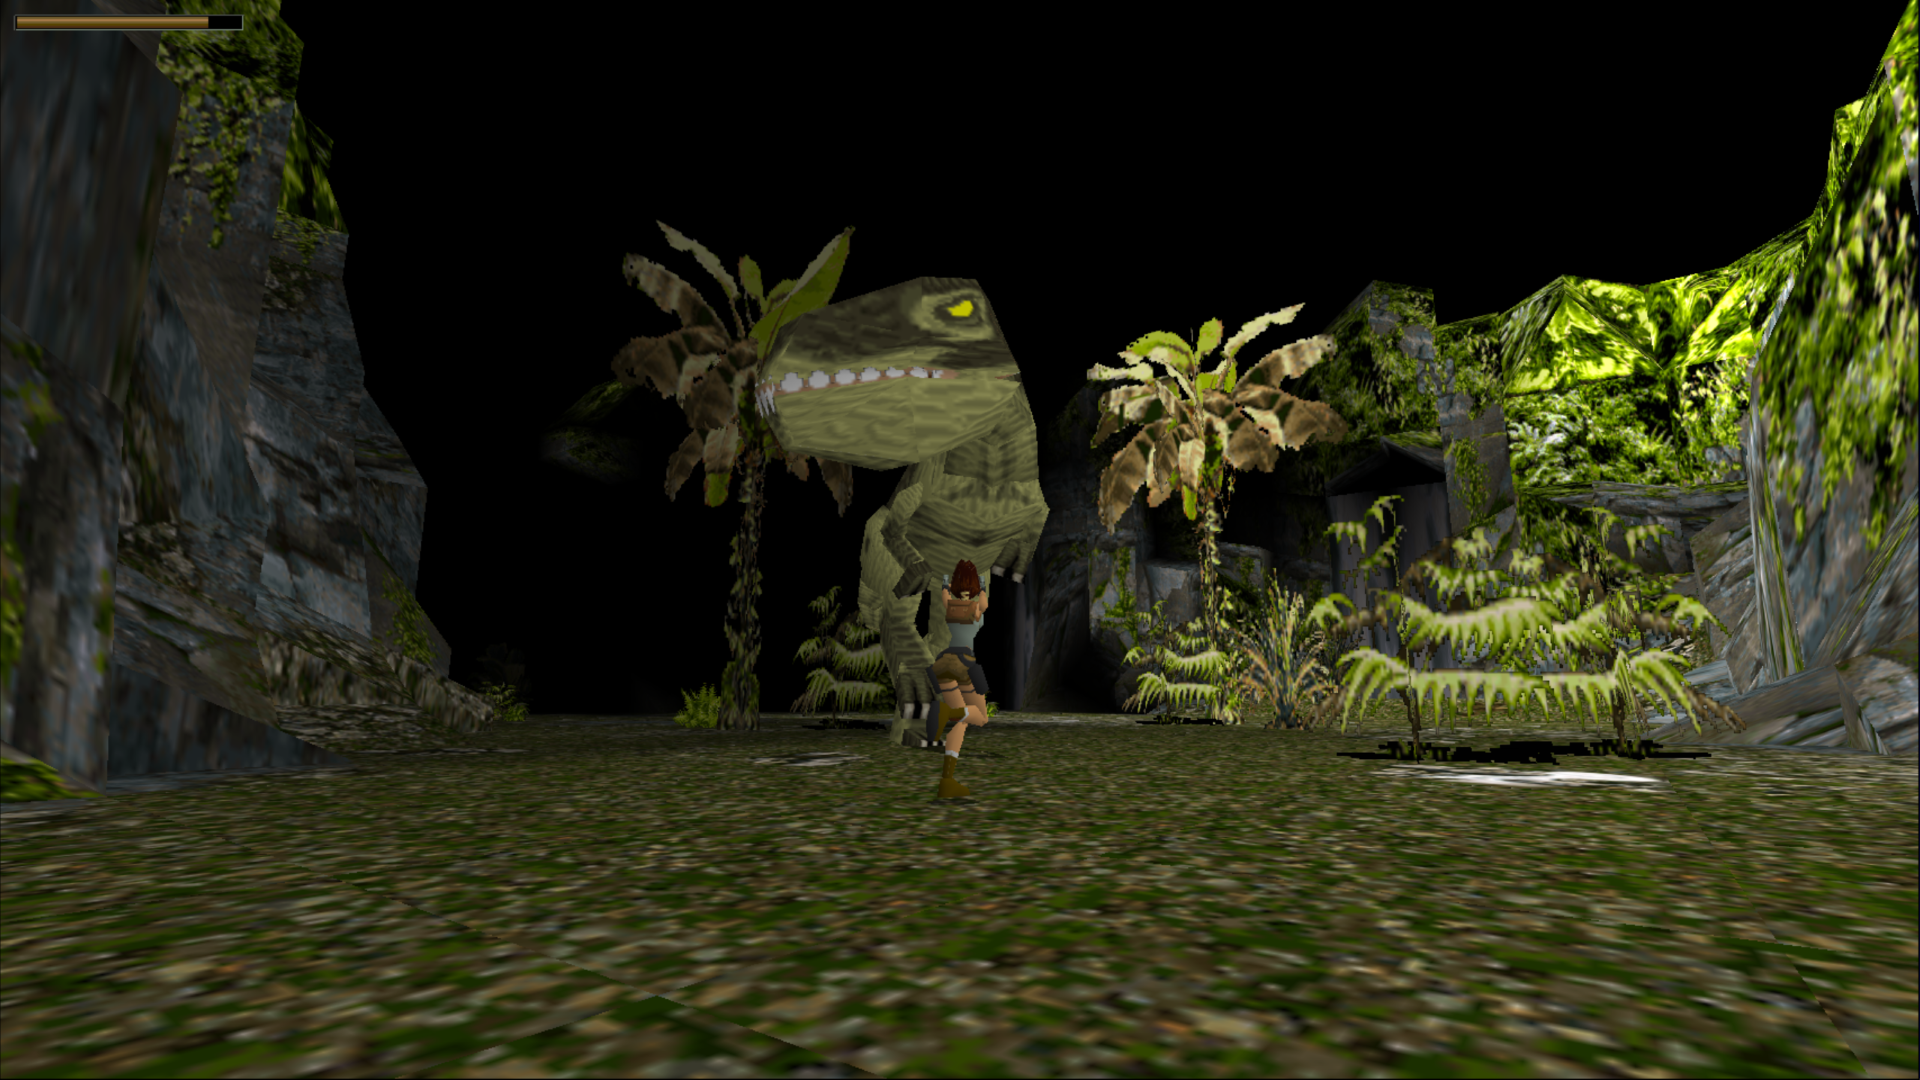 Lara facing the infamous T-Rex in the very first Tomb Raider game